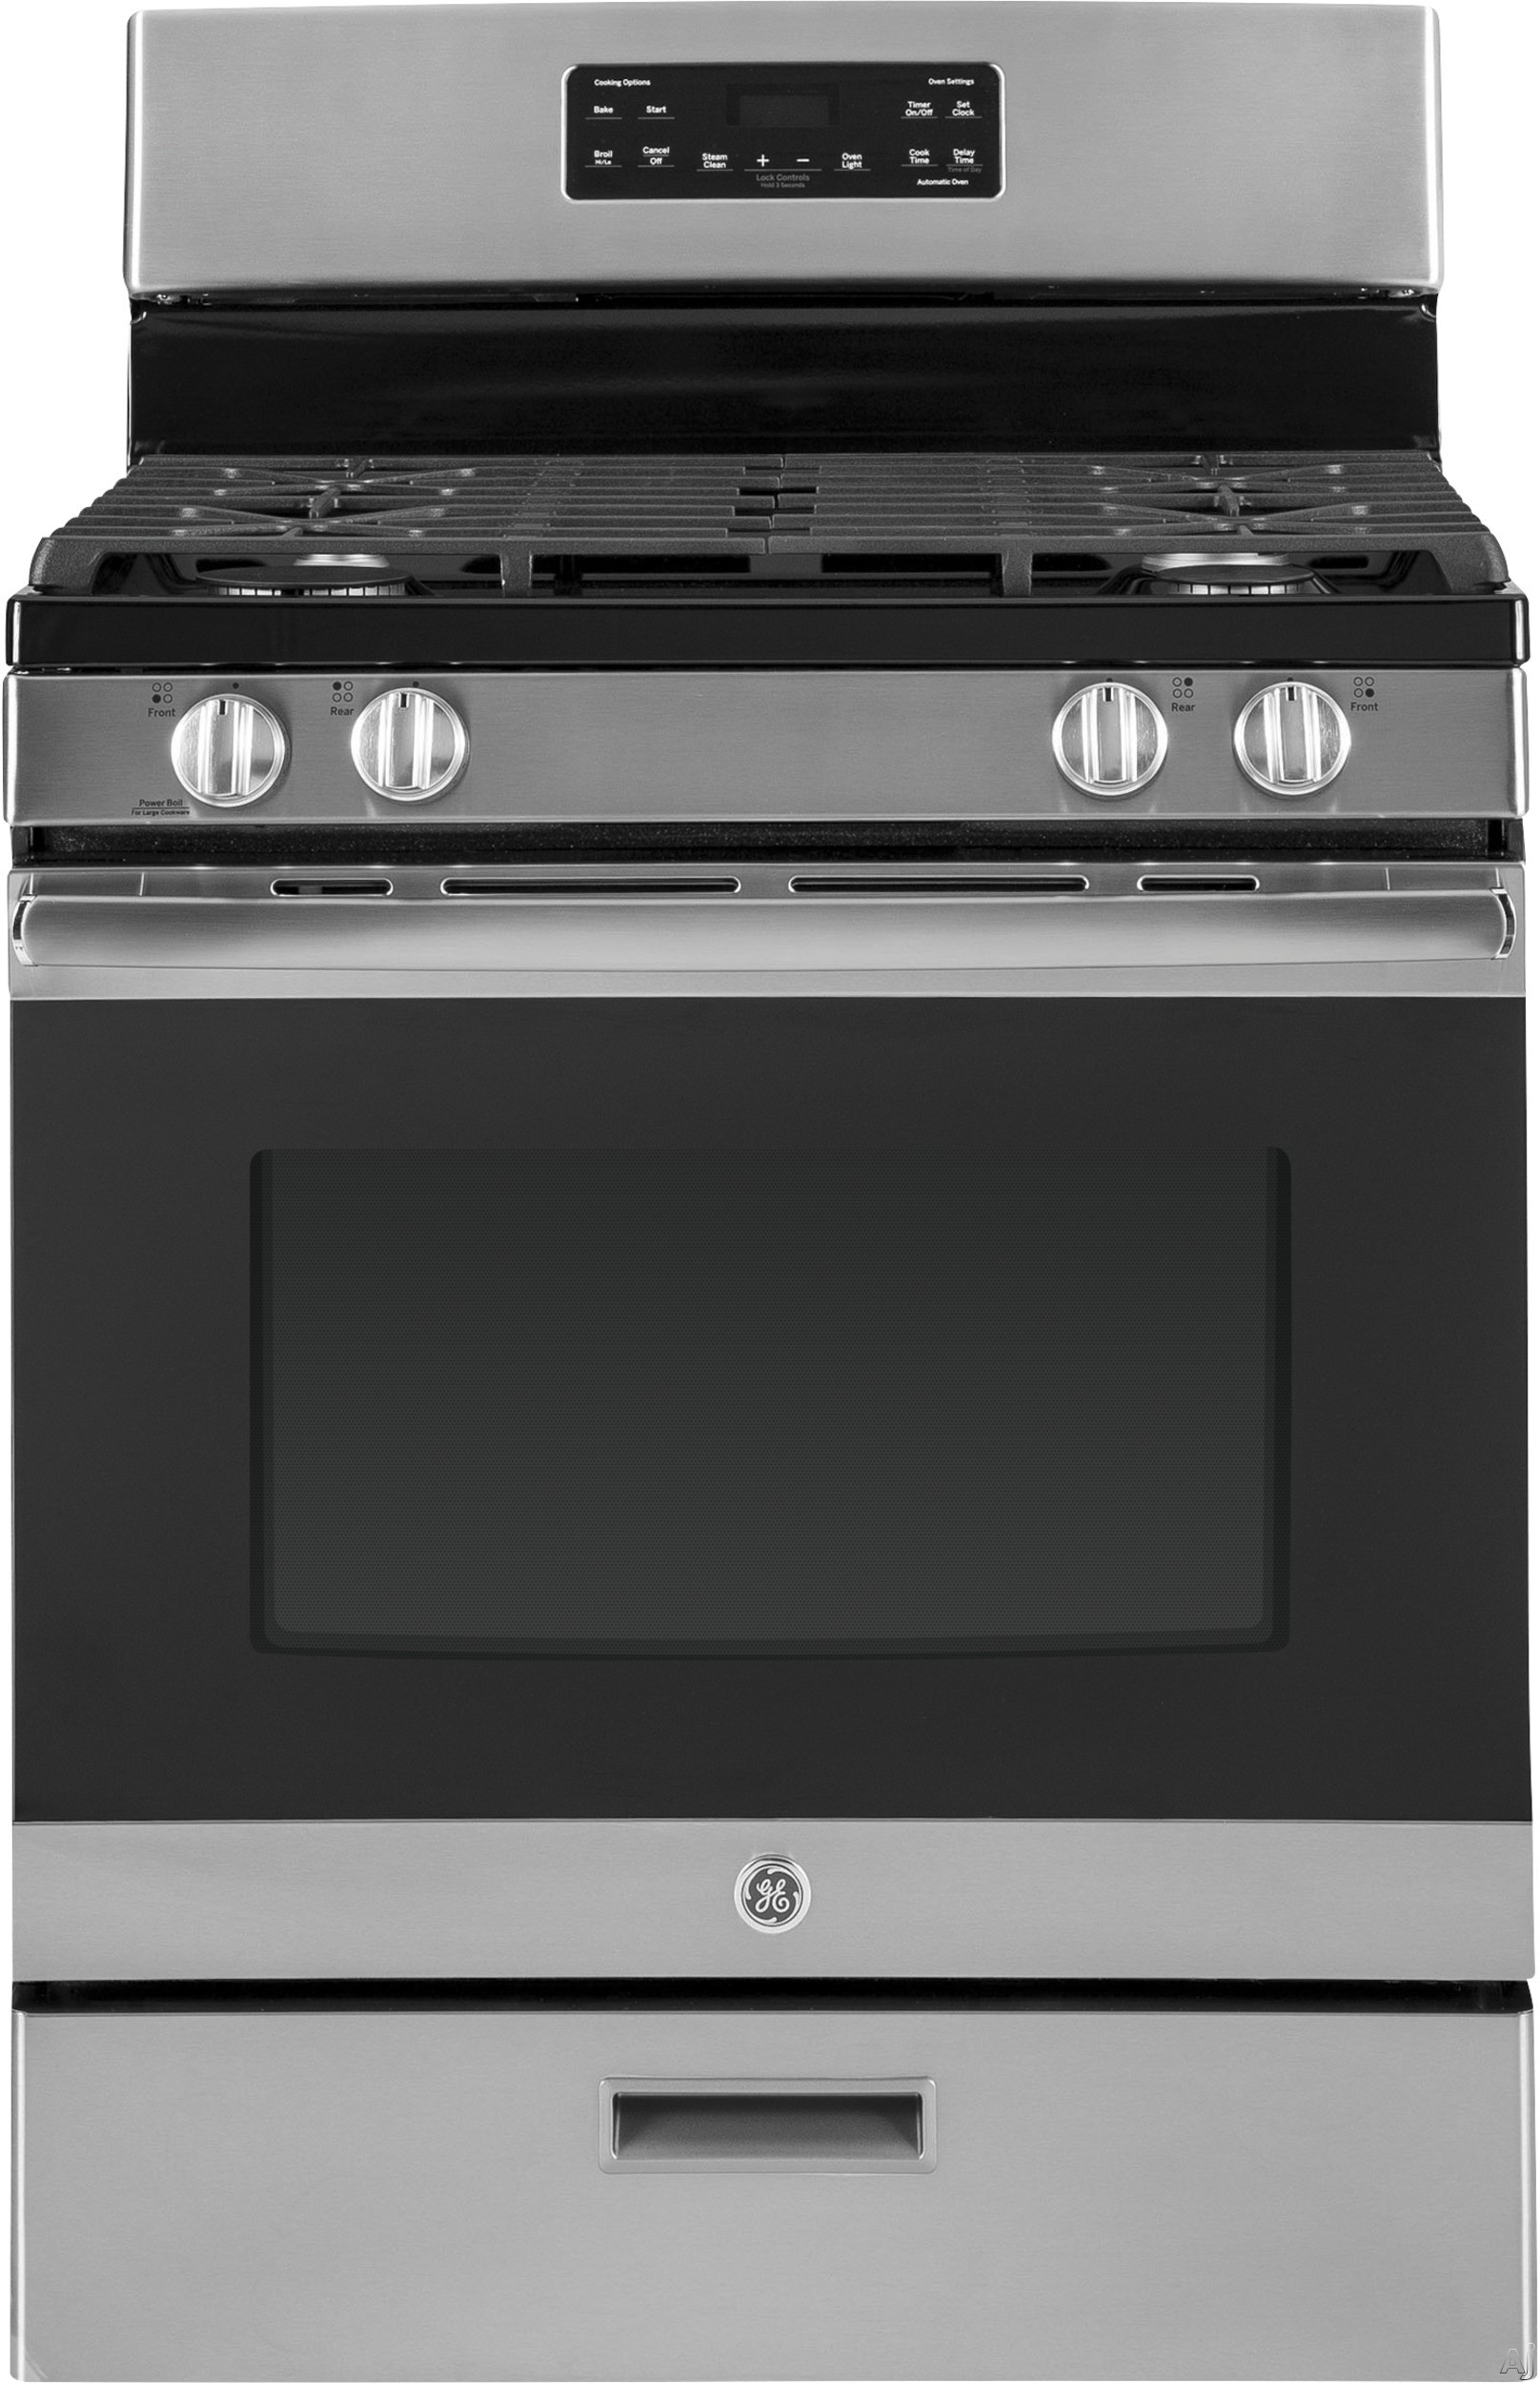 GE JGBS62REKSS 30 Inch Freestanding Gas Range with Power Boil Burner, Simmer Burner, Steam Clean, Broiler Drawer, Continuous Grates, 4 Sealed Burners and 5 cu. ft. Capacity: Stainless Steel